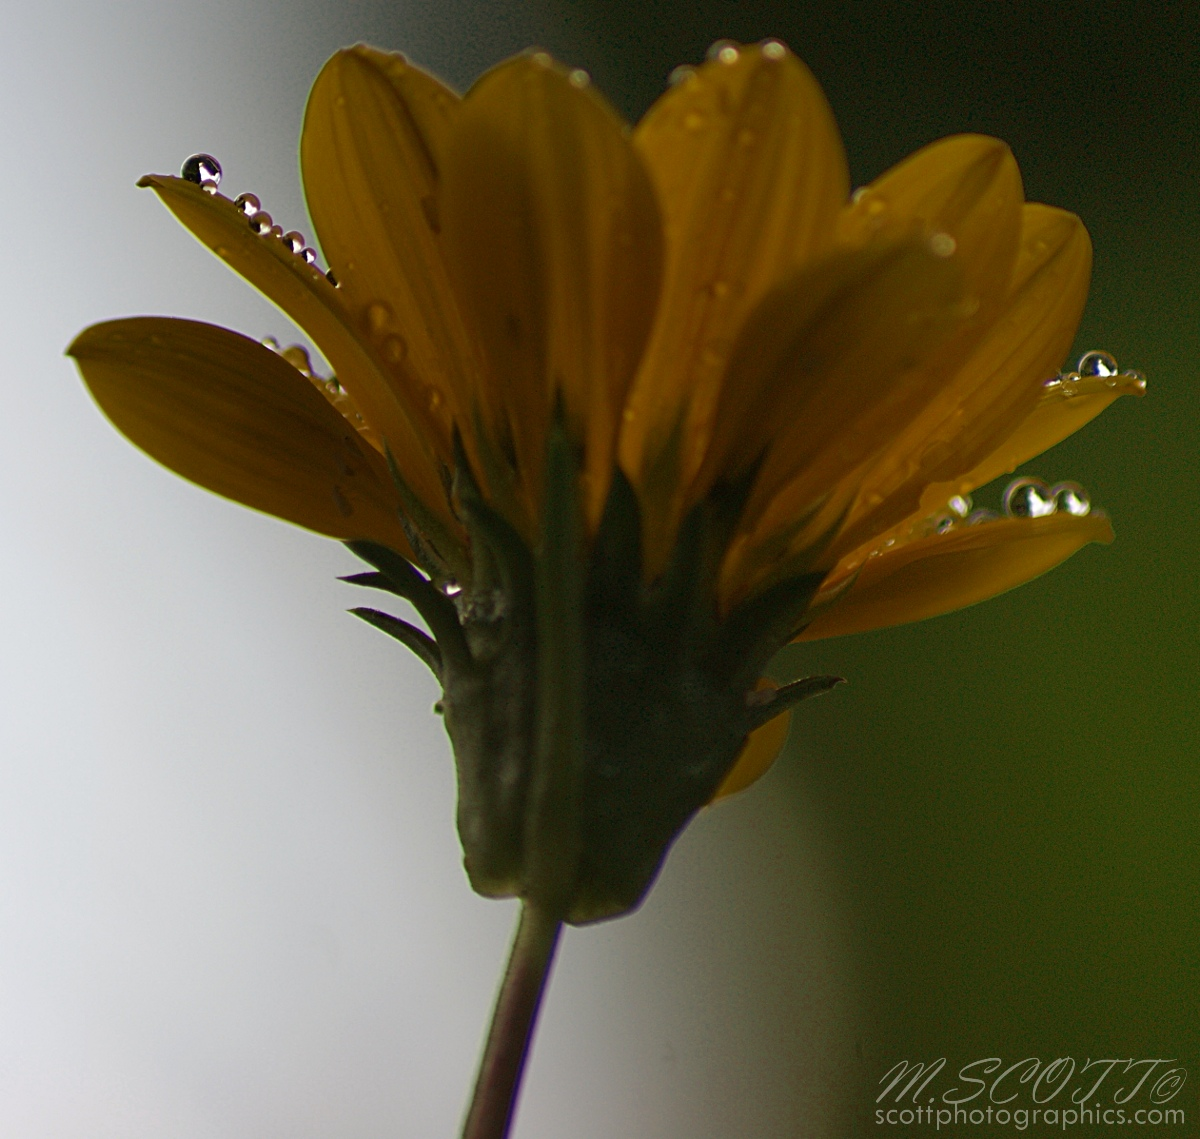 yellow-flower-water-droplets-1.jpg